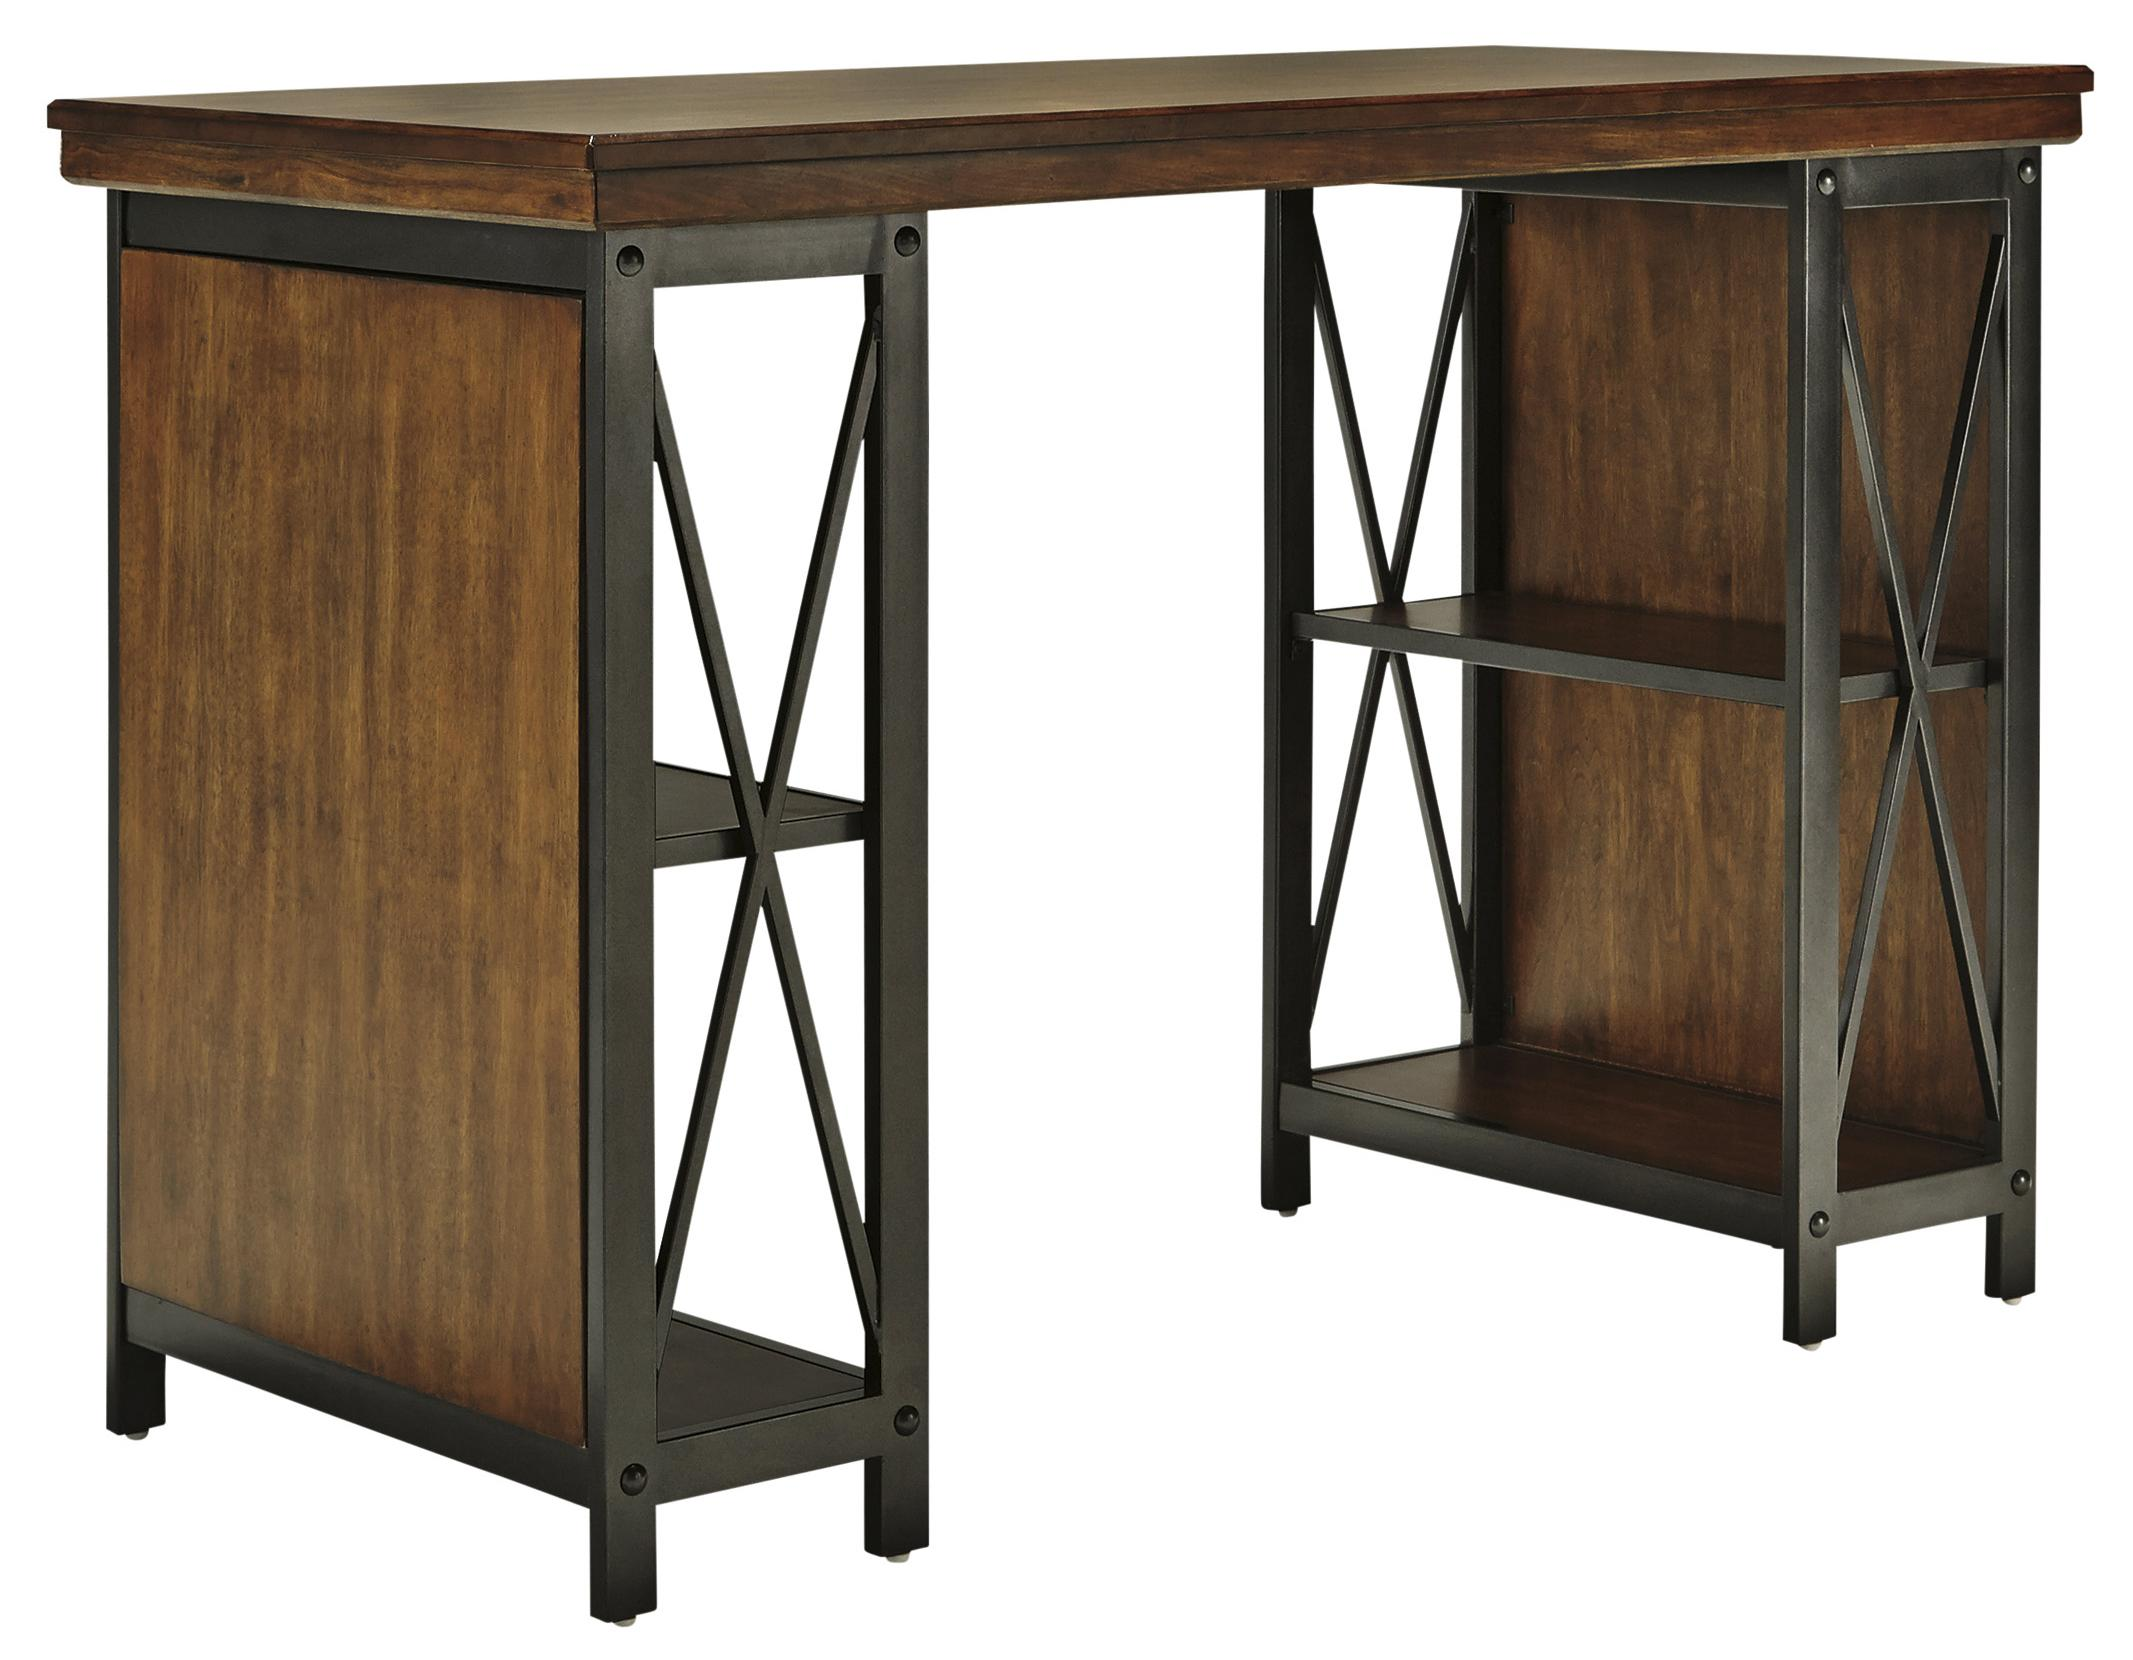 Signature Design by Ashley Shayneville Home Office Counter Large Desk - Item Number: H526-34